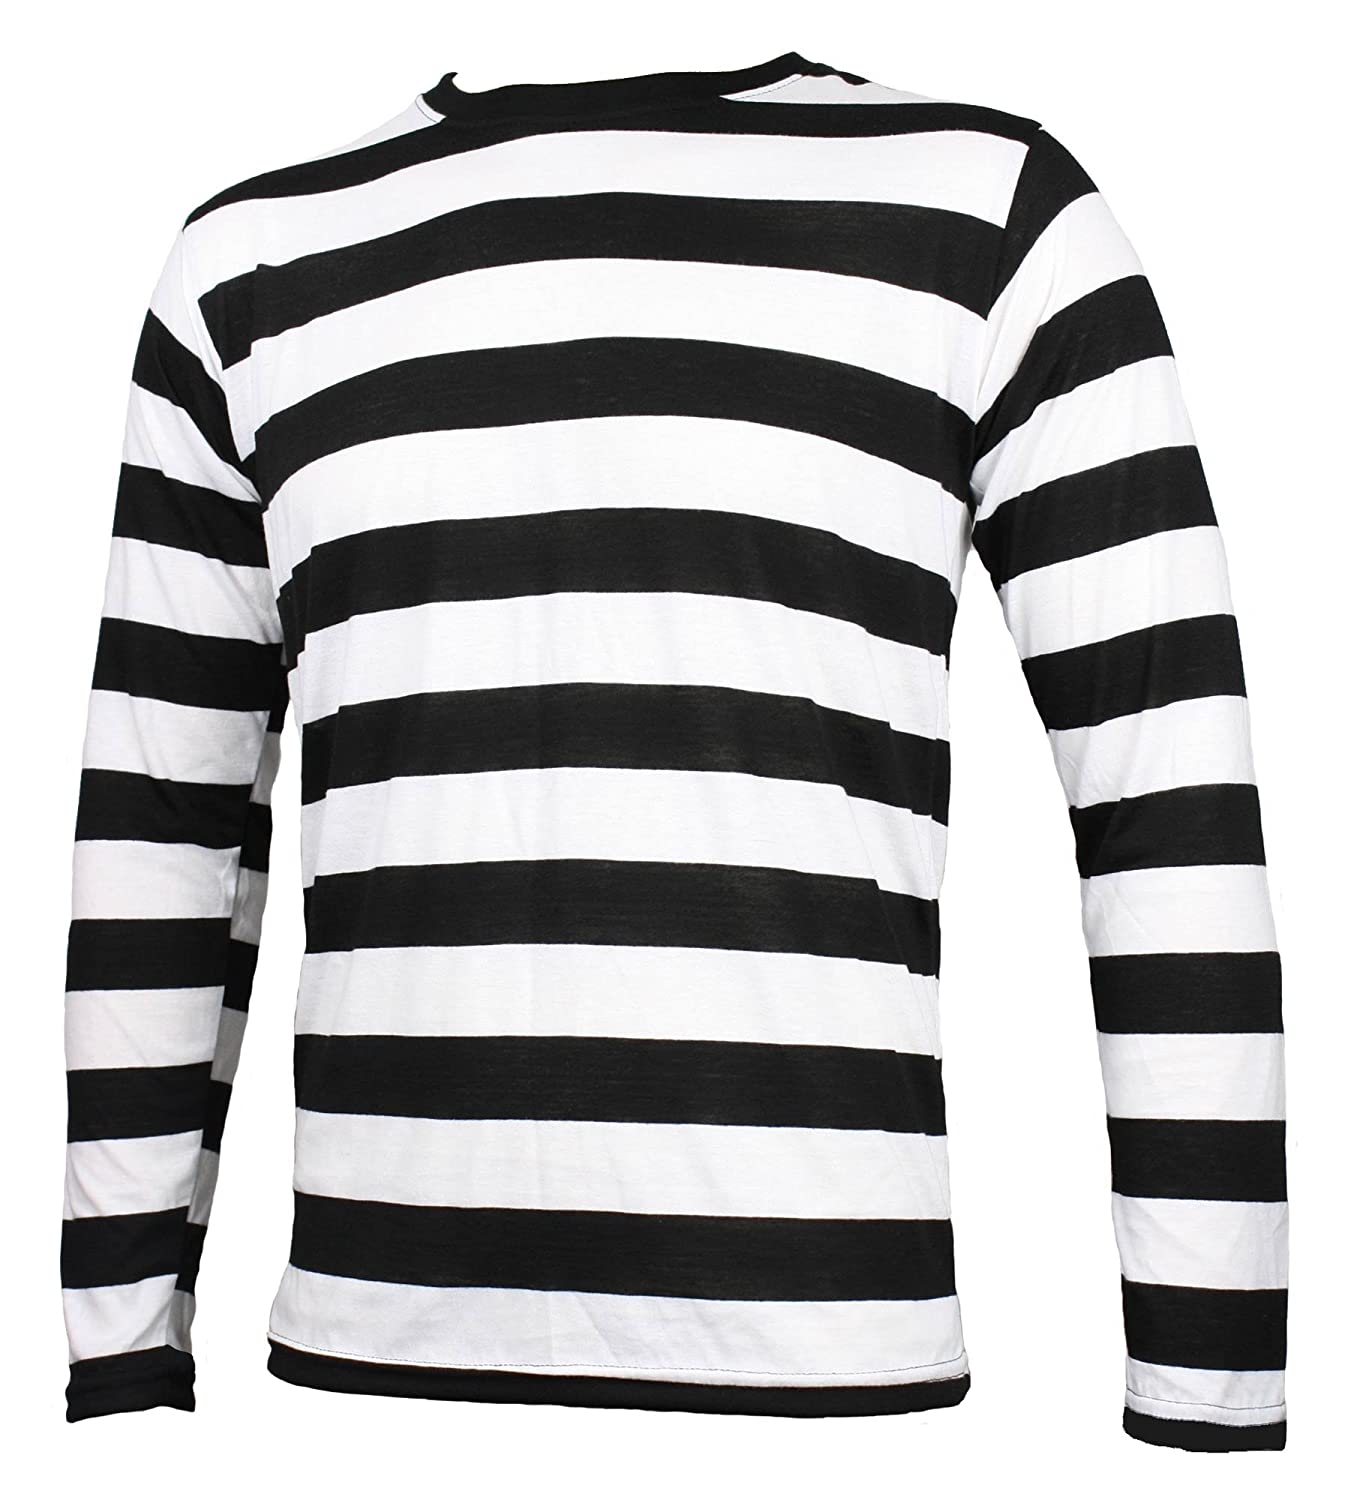 Black And White Striped Shirt Men